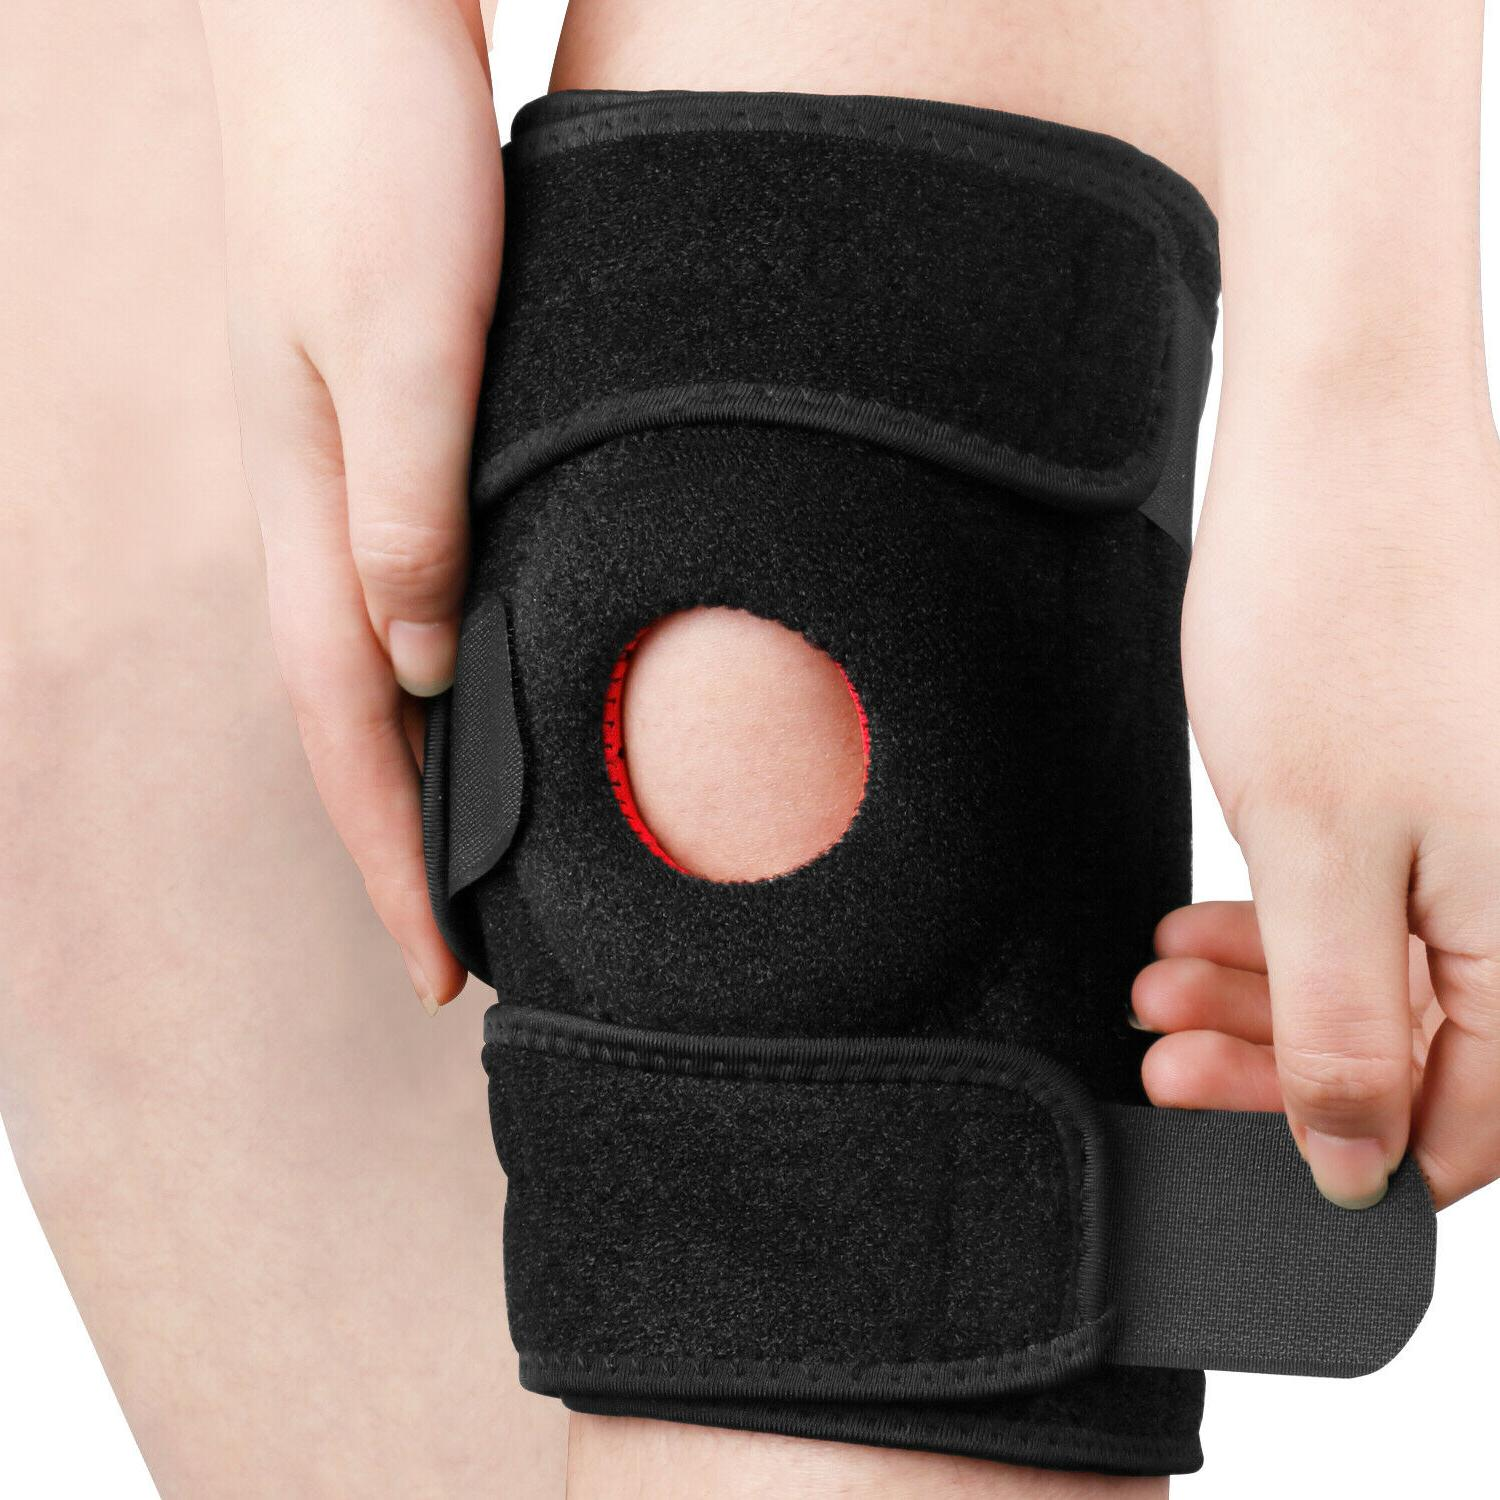 Knee Brace Support Leg Wrap For Arthritis